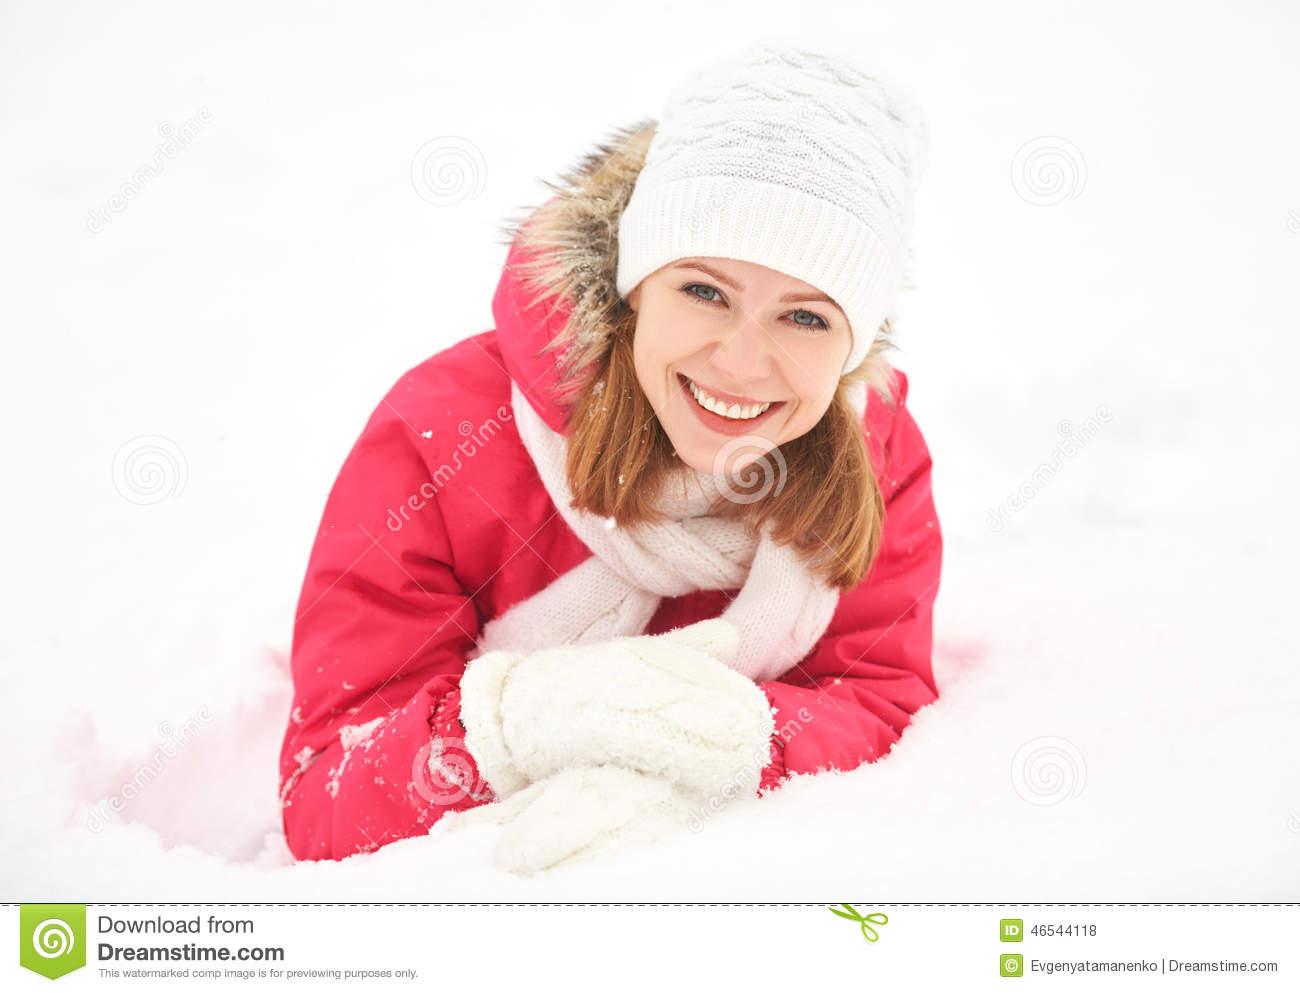 Happy girl laughs while lying on the snow in winter outdoors